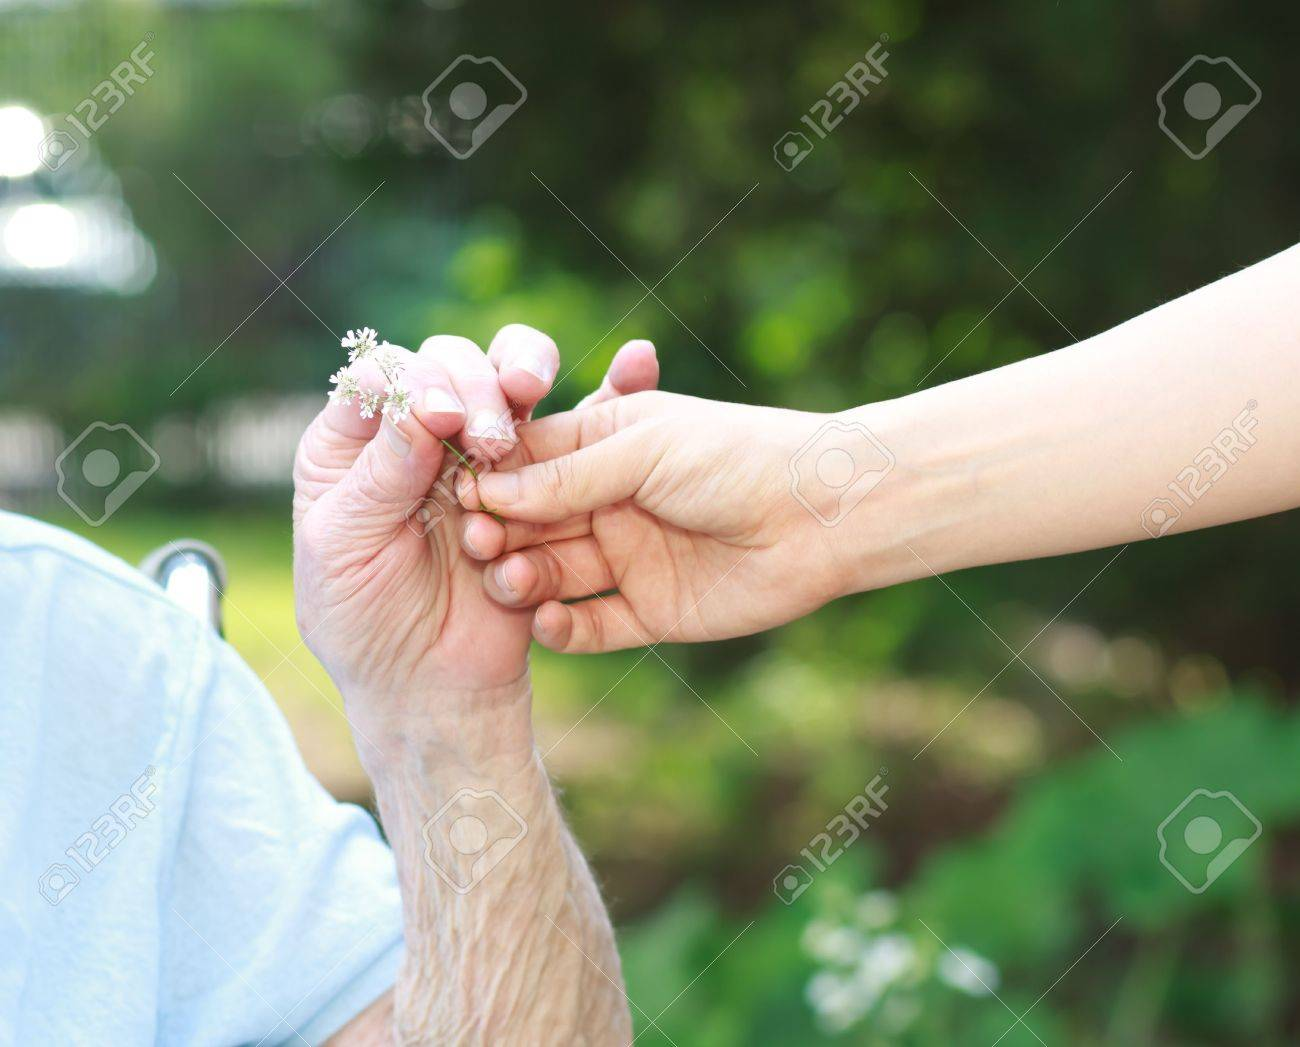 giving a white flower to senior lady outside stock photo picture